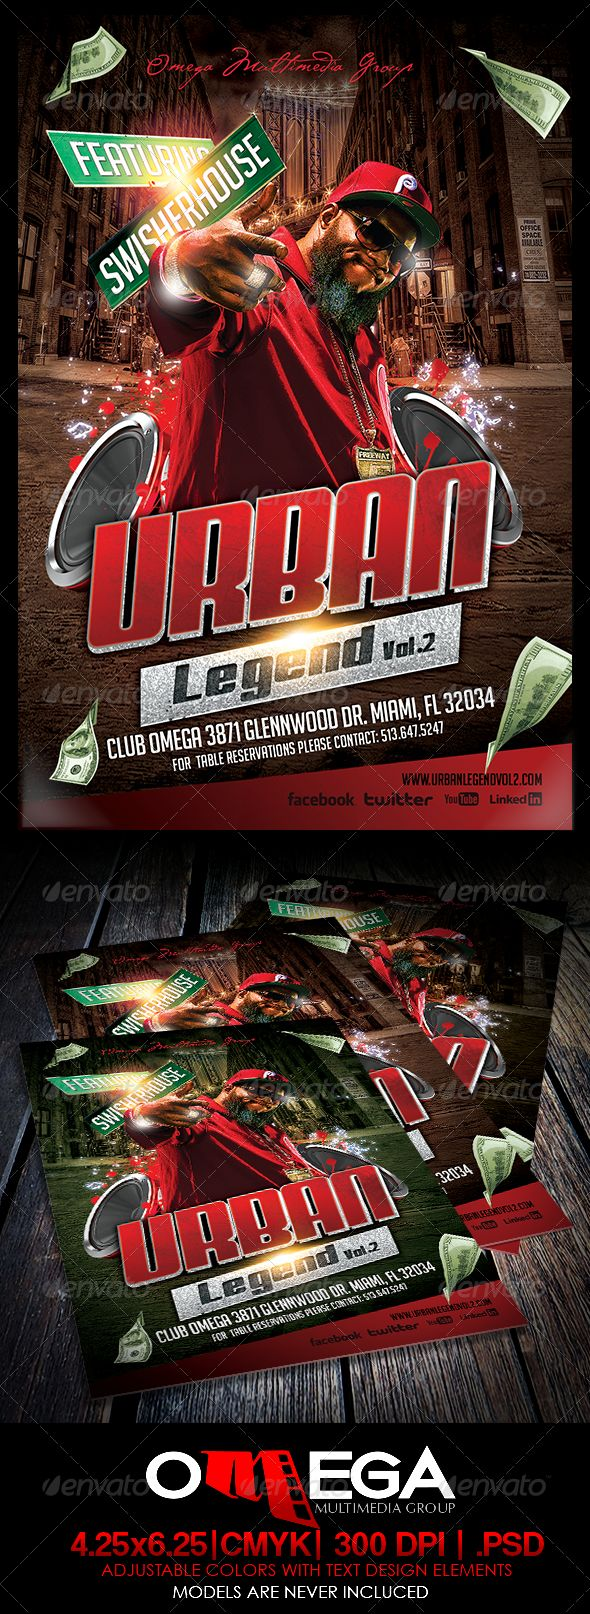 Realistic Graphic DOWNLOAD (.ai, .psd) :: http://sourcecodes.pro/pinterest-itmid-1005901529i.html ... Urban Legend Vol.II ...  brooklyn, christmas, city, dj, djay, event, fall, flyer, holiday, new york, old, party, rap, red, rock, school, text, type, urban  ... Realistic Photo Graphic Print Obejct Business Web Elements Illustration Design Templates ... DOWNLOAD :: http://sourcecodes.pro/pinterest-itmid-1005901529i.html